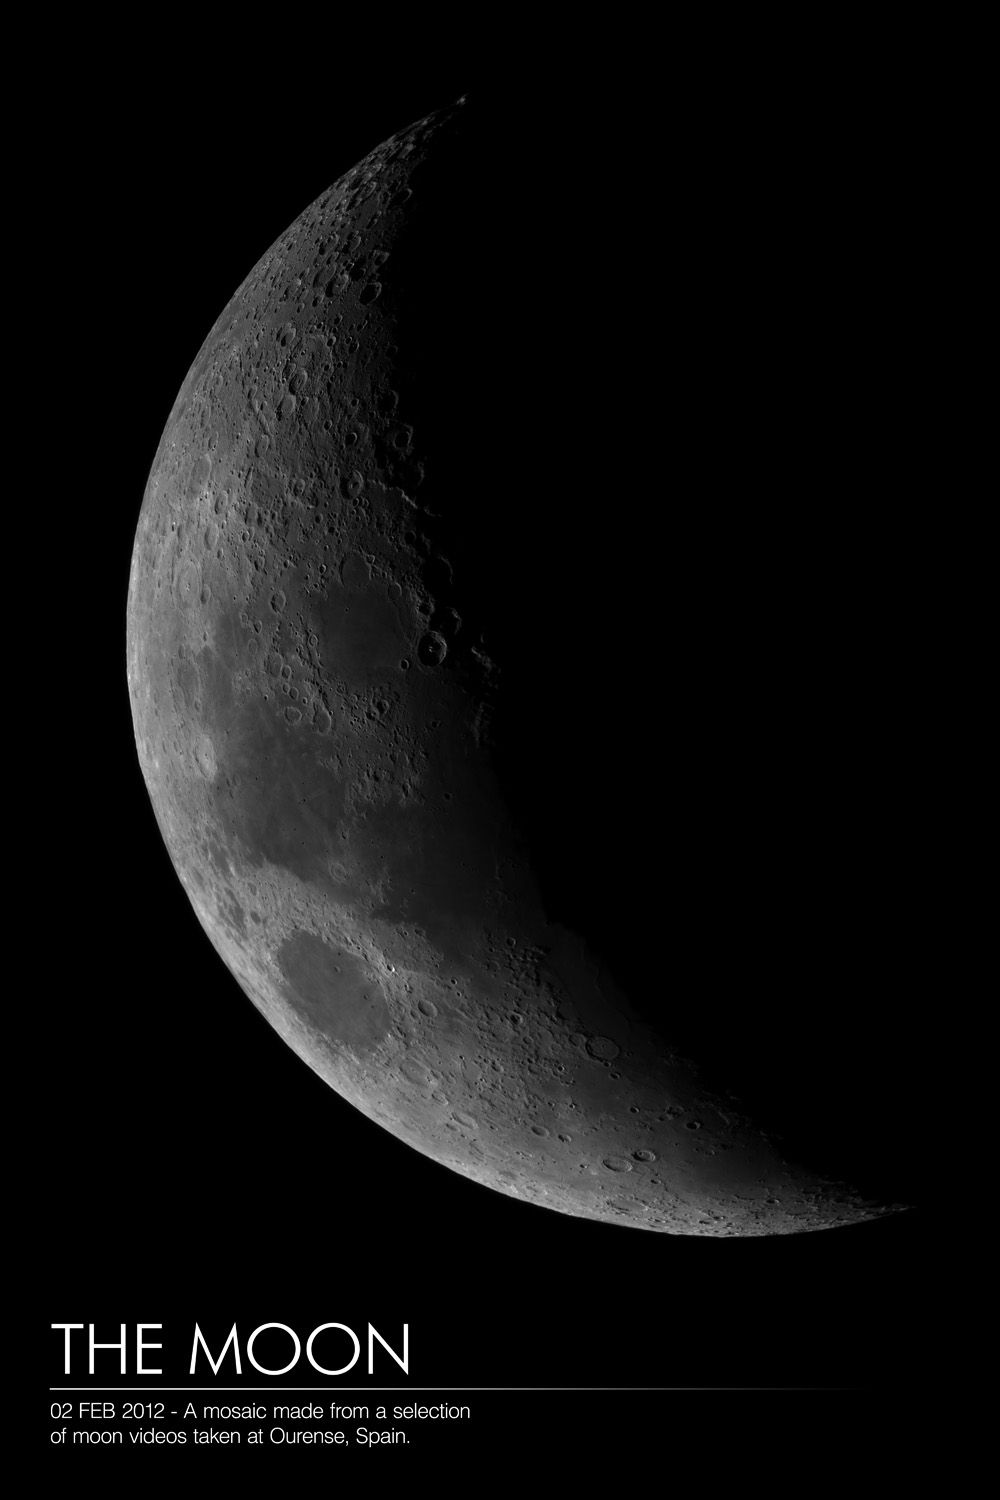 The Moon | Astronomy    Sky events, Galaxies, Planets, Moons